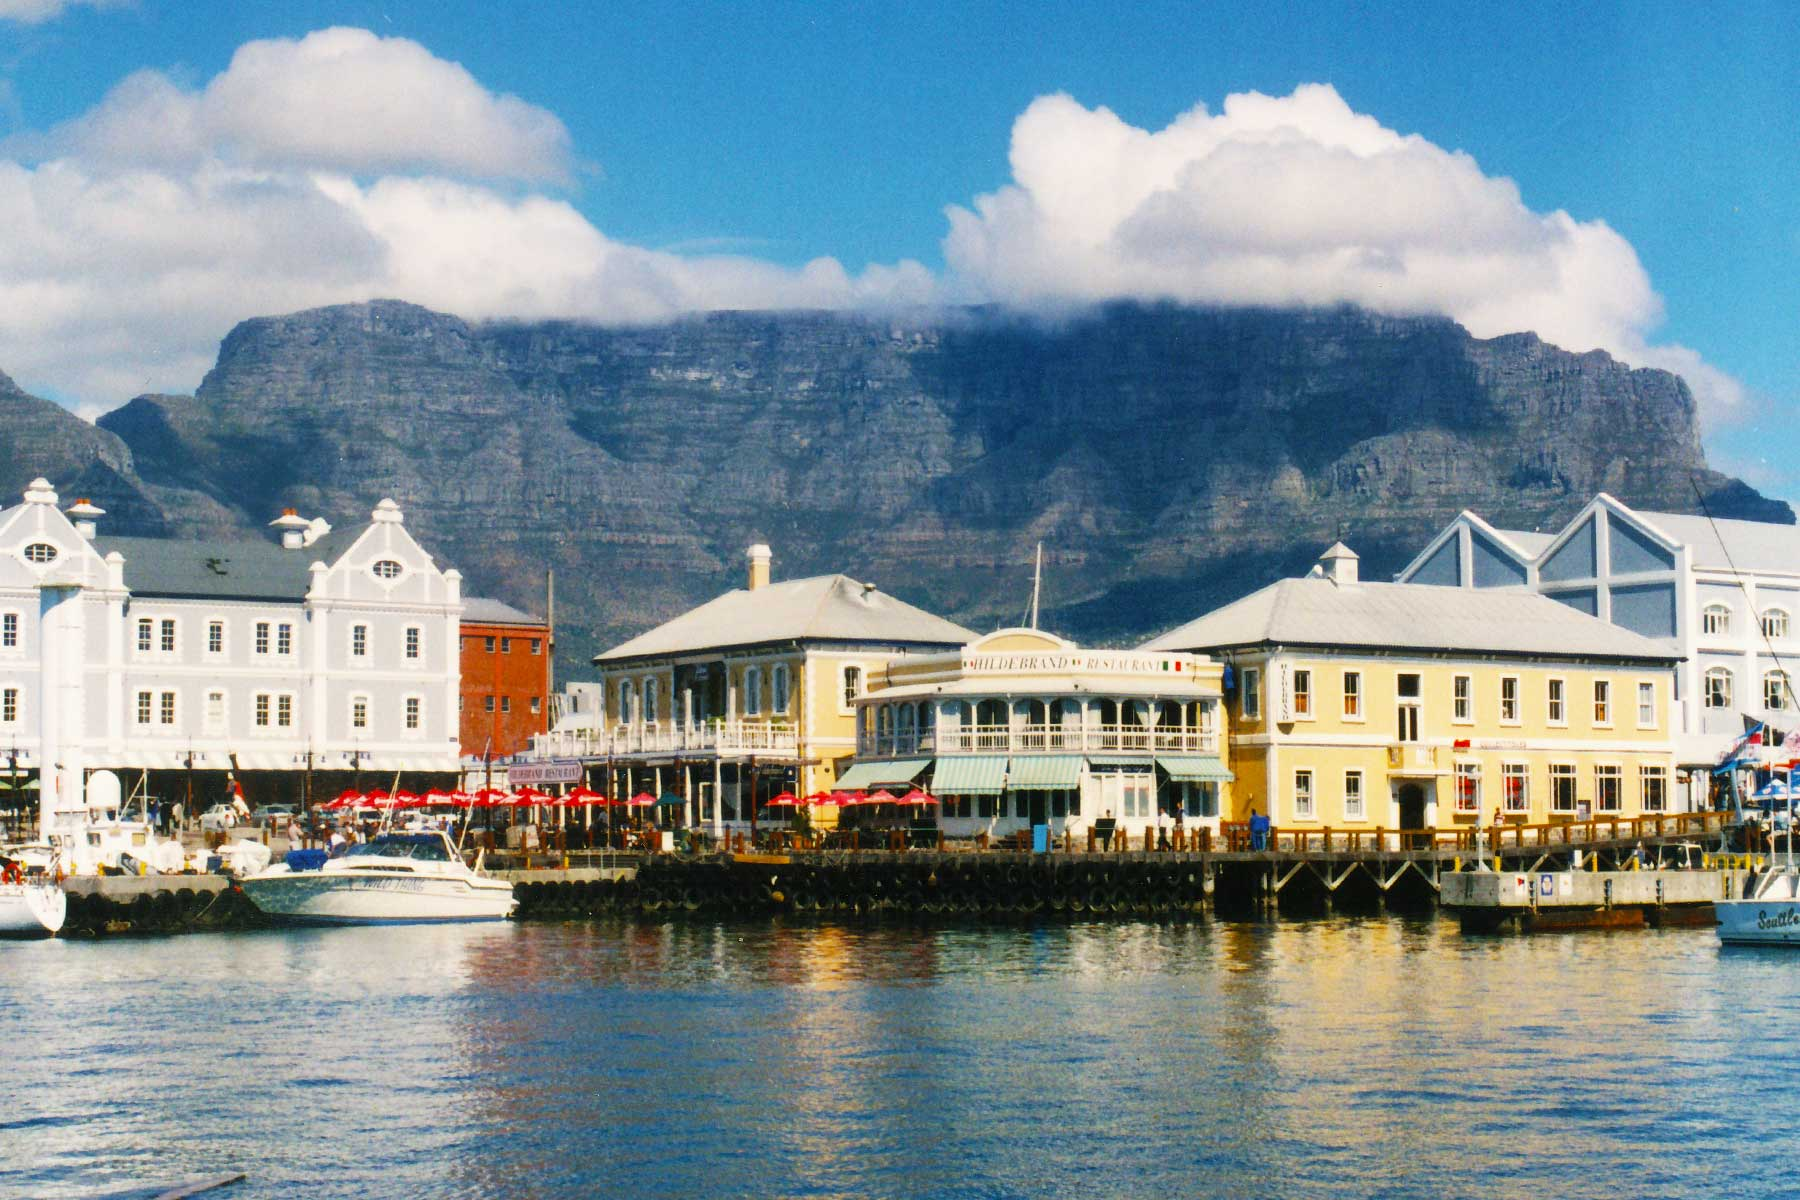 Waterfront - Cape Town - Steven Andrew Martin PhD - South Africa Photo Journal